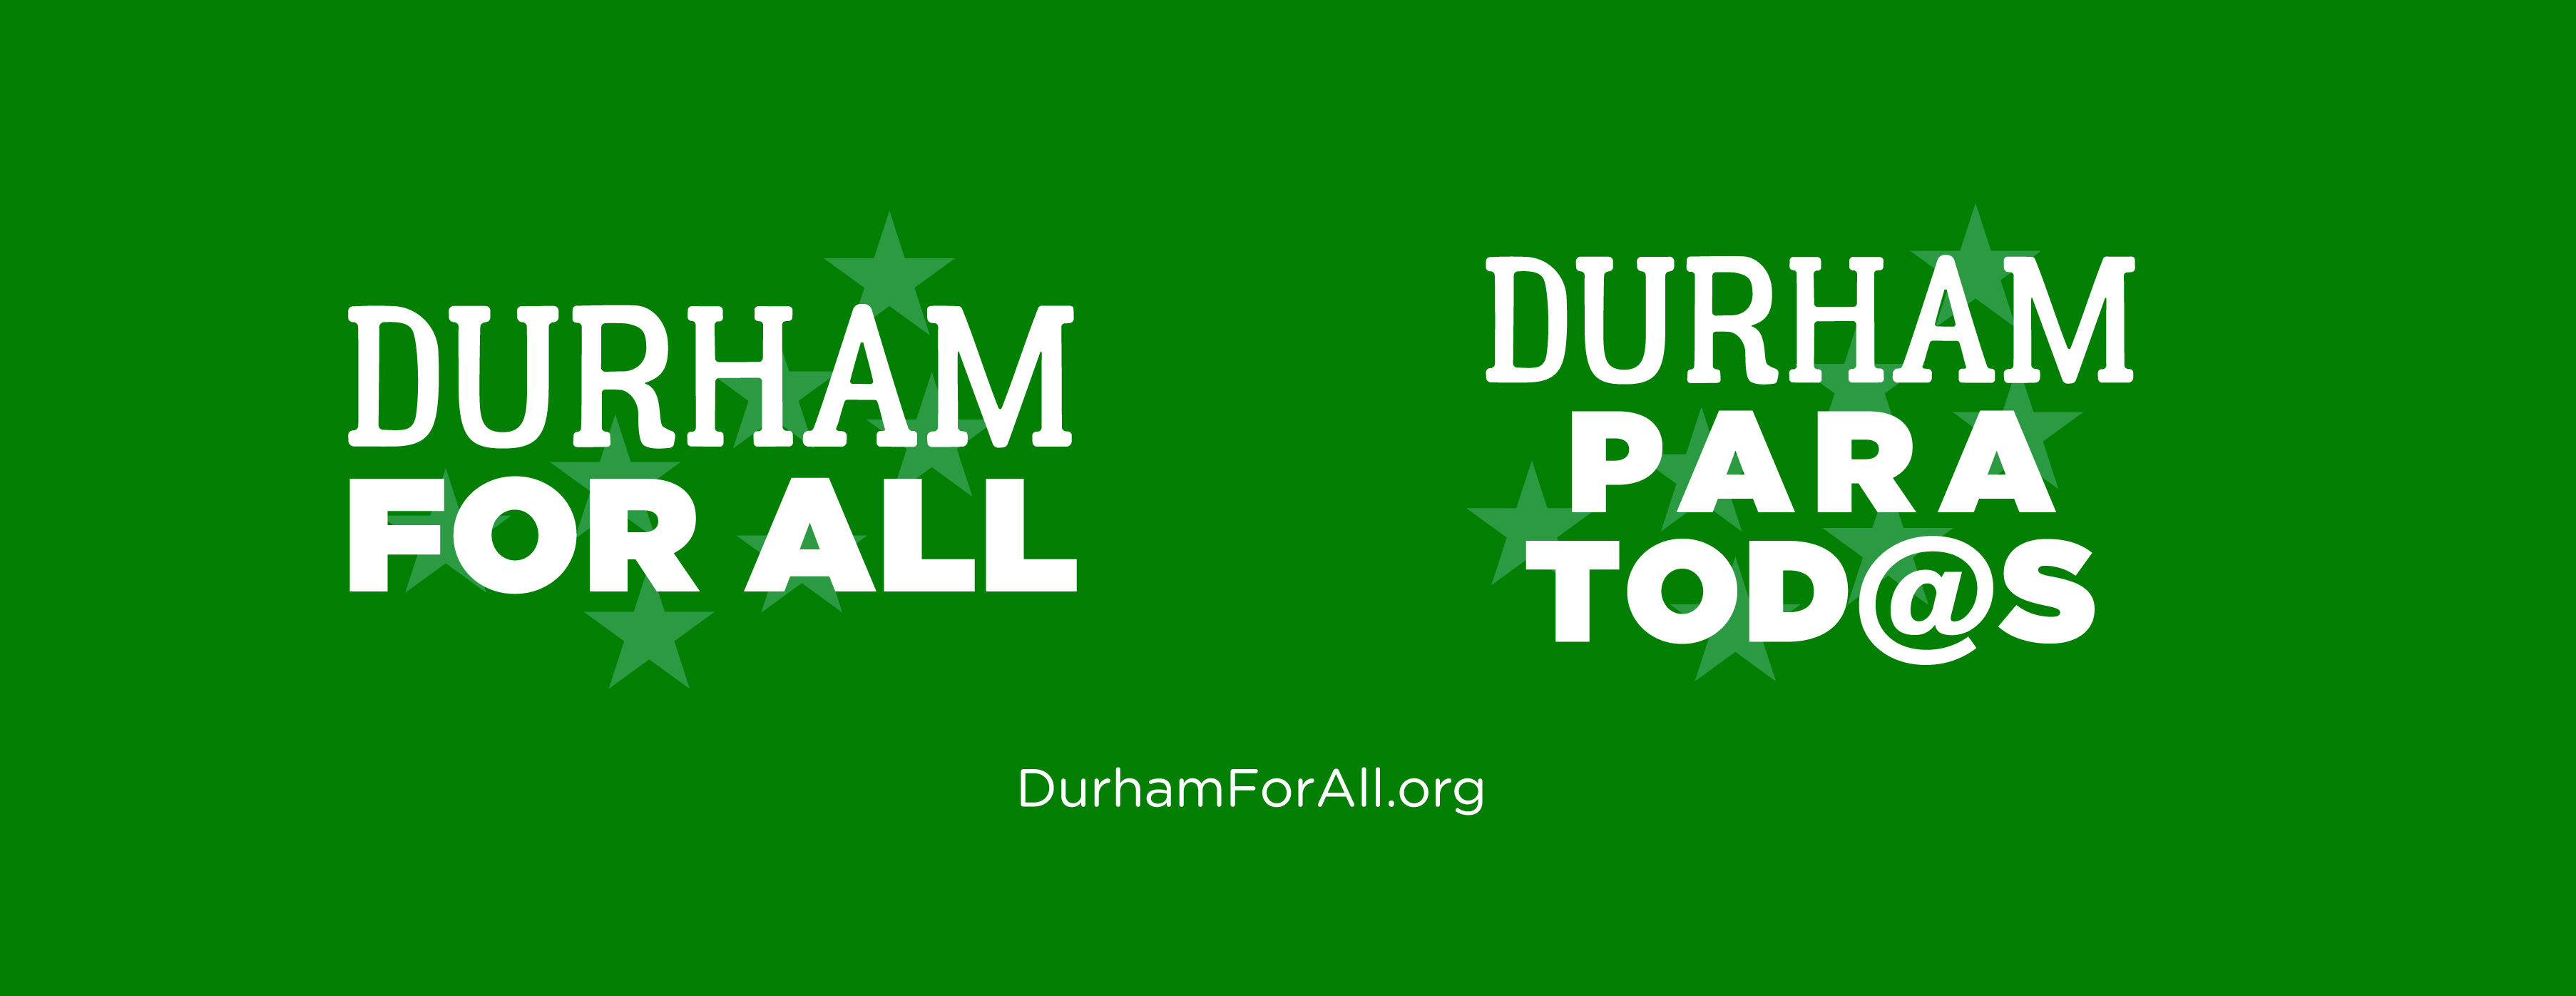 Durham For All / Durham Para Tod@s Banner